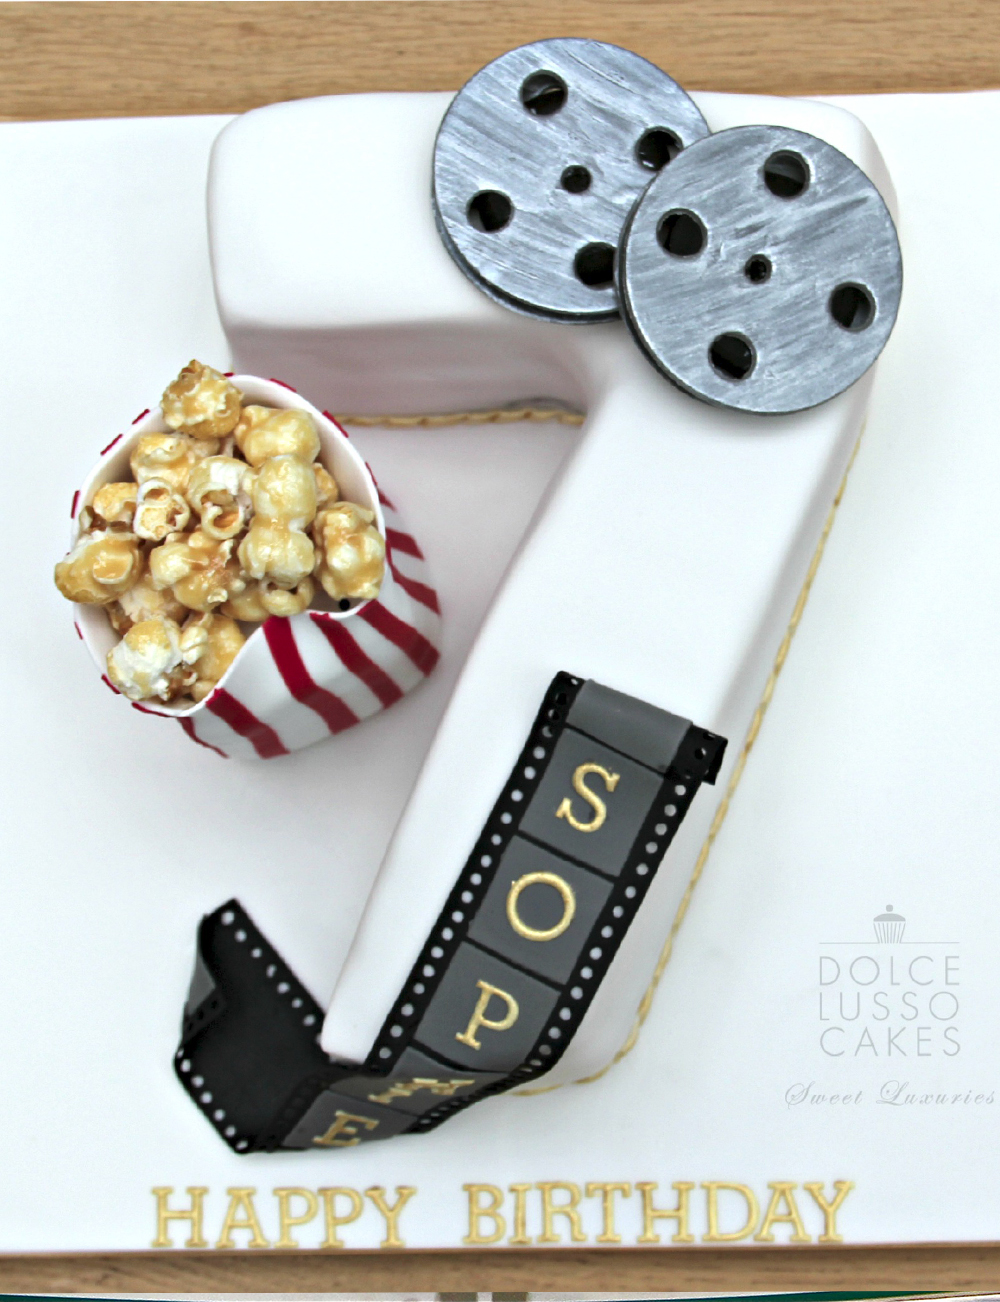 Dolce Lusso Cakes 7 number7 birthday cinema film popcorn cake